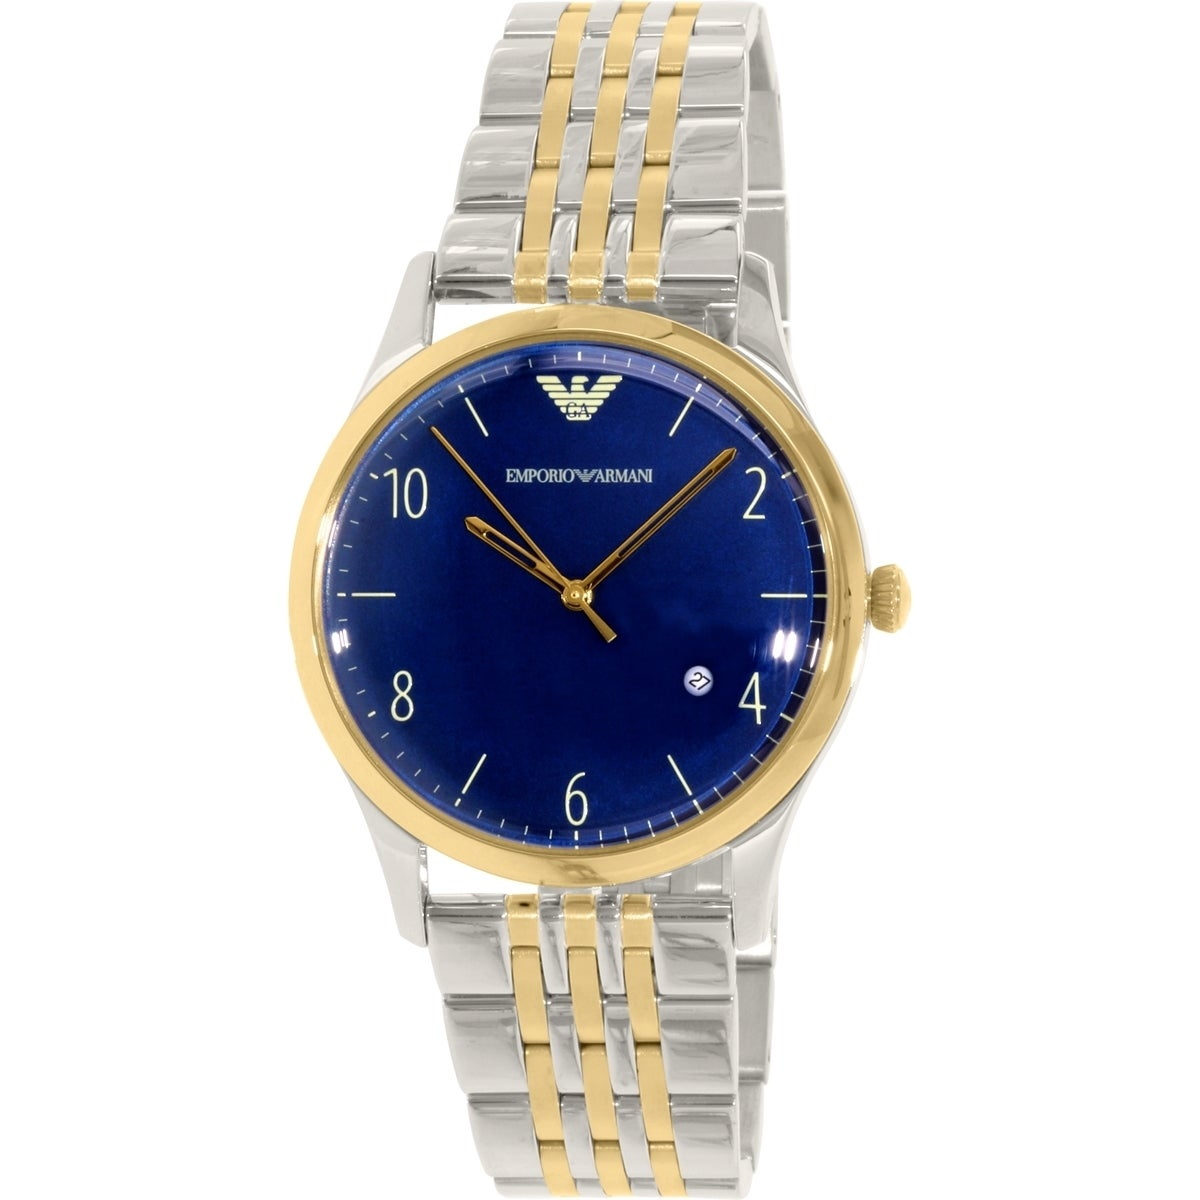 e238eeb7837 Shop Emporio Armani Men s AR1868  Classic  Two-Tone Stainless Steel Watch -  Free Shipping Today - Overstock - 10389535